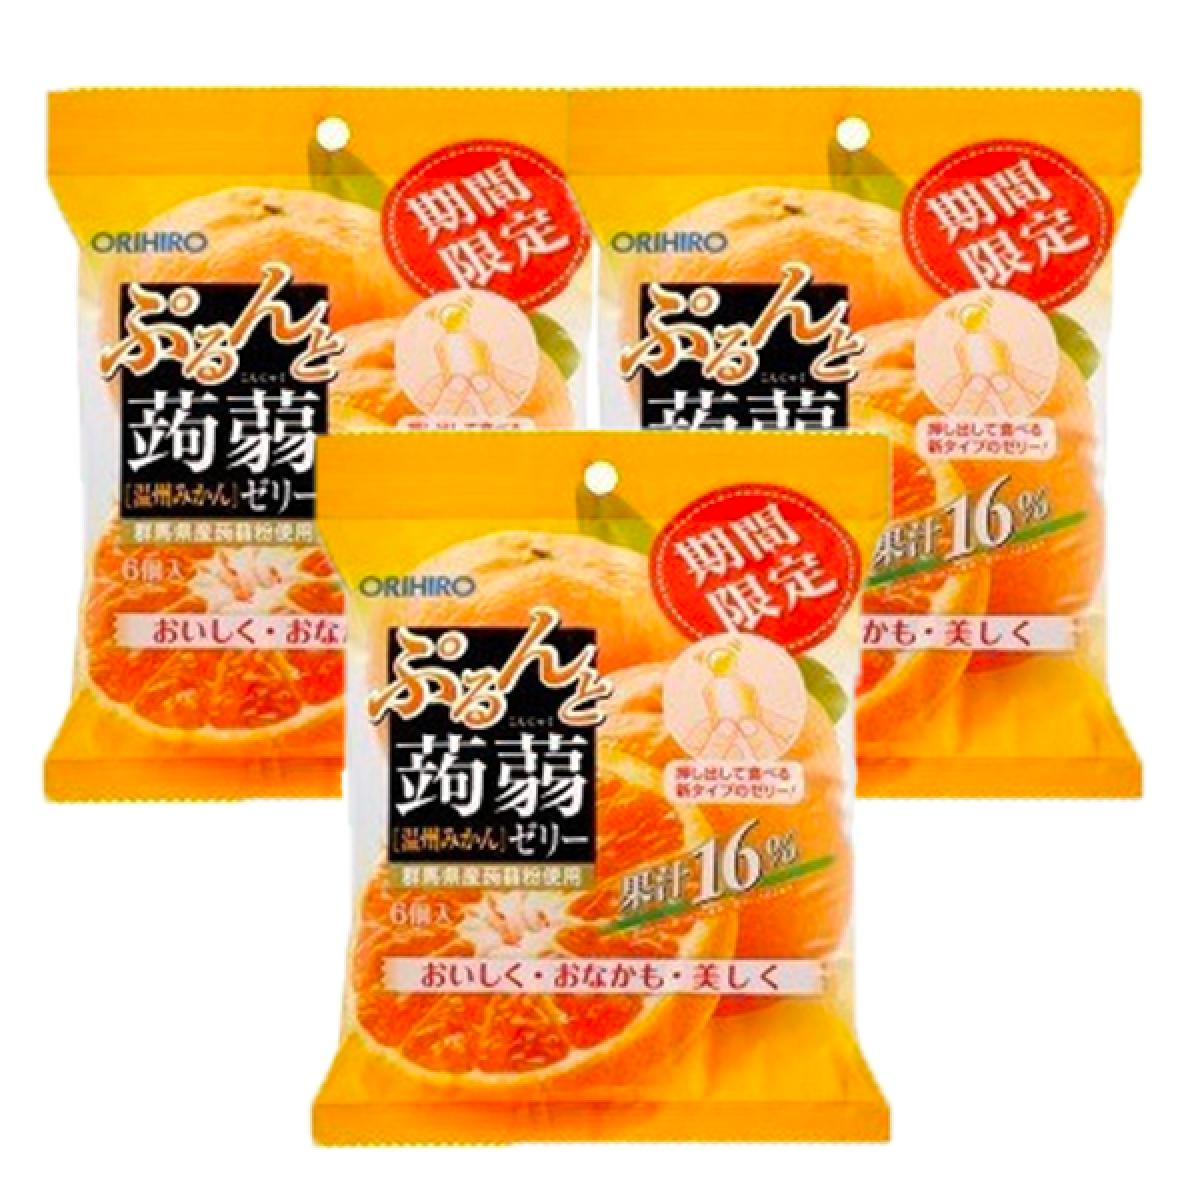 Orihiro Puru and Jelly pouch Mikan flavour 120g x 3 pack (4571157254821_3)